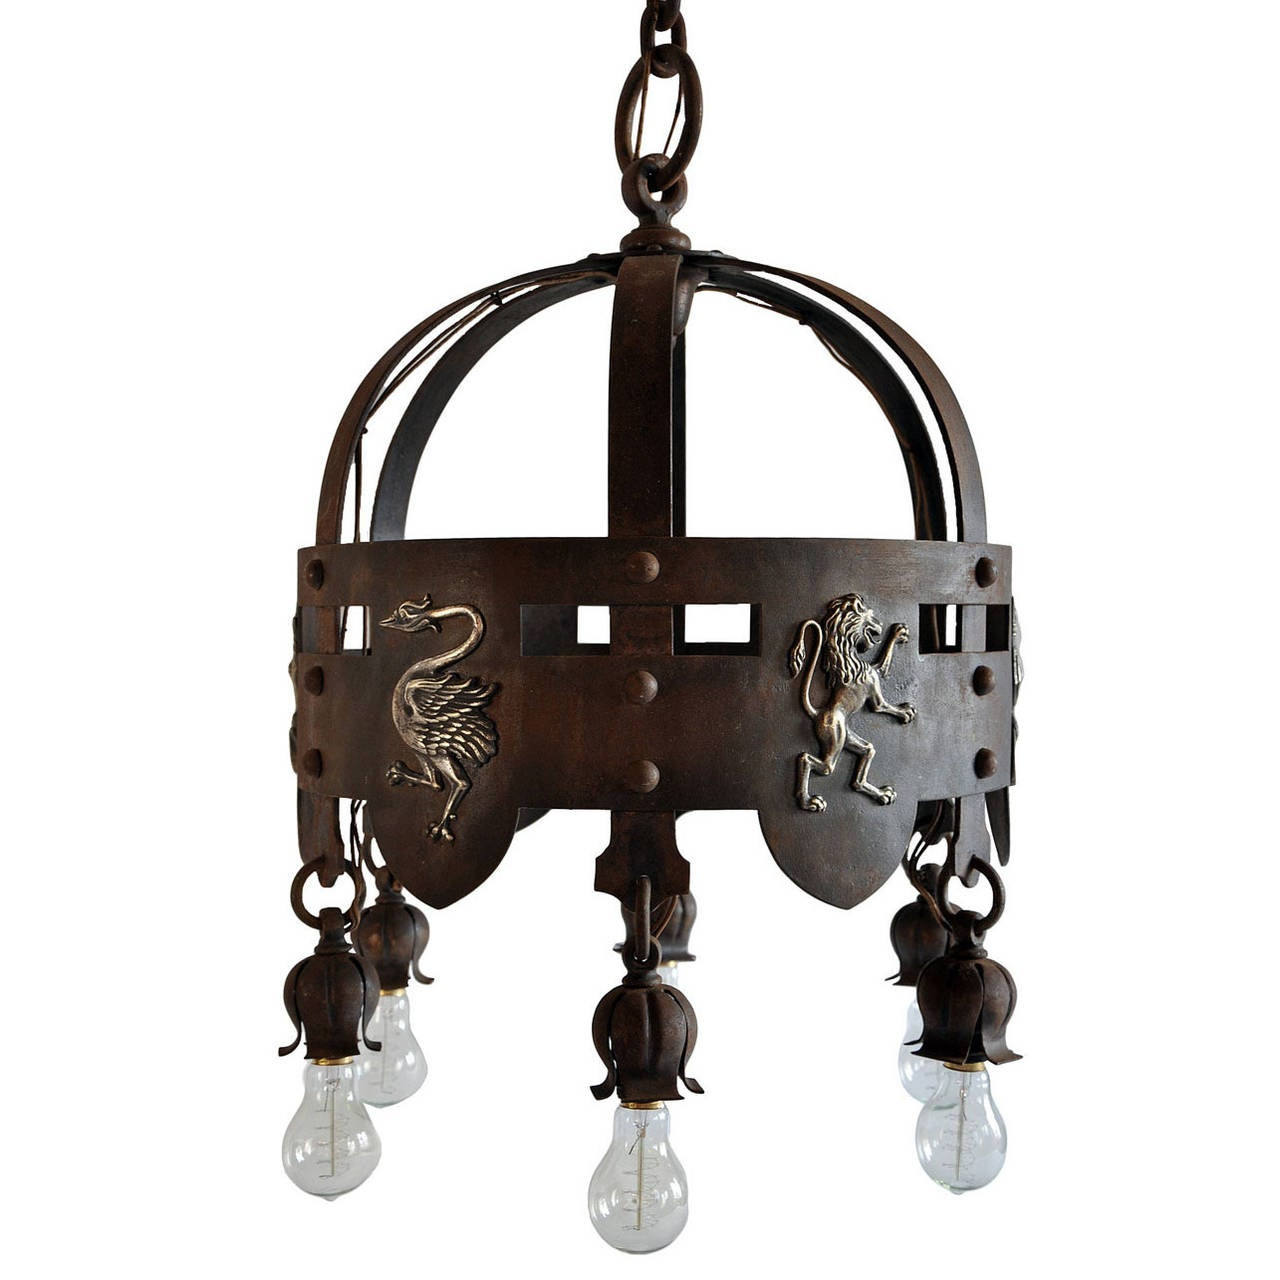 Iron Arts and Crafts Chandelier with Brass Emblems at 1stdibs